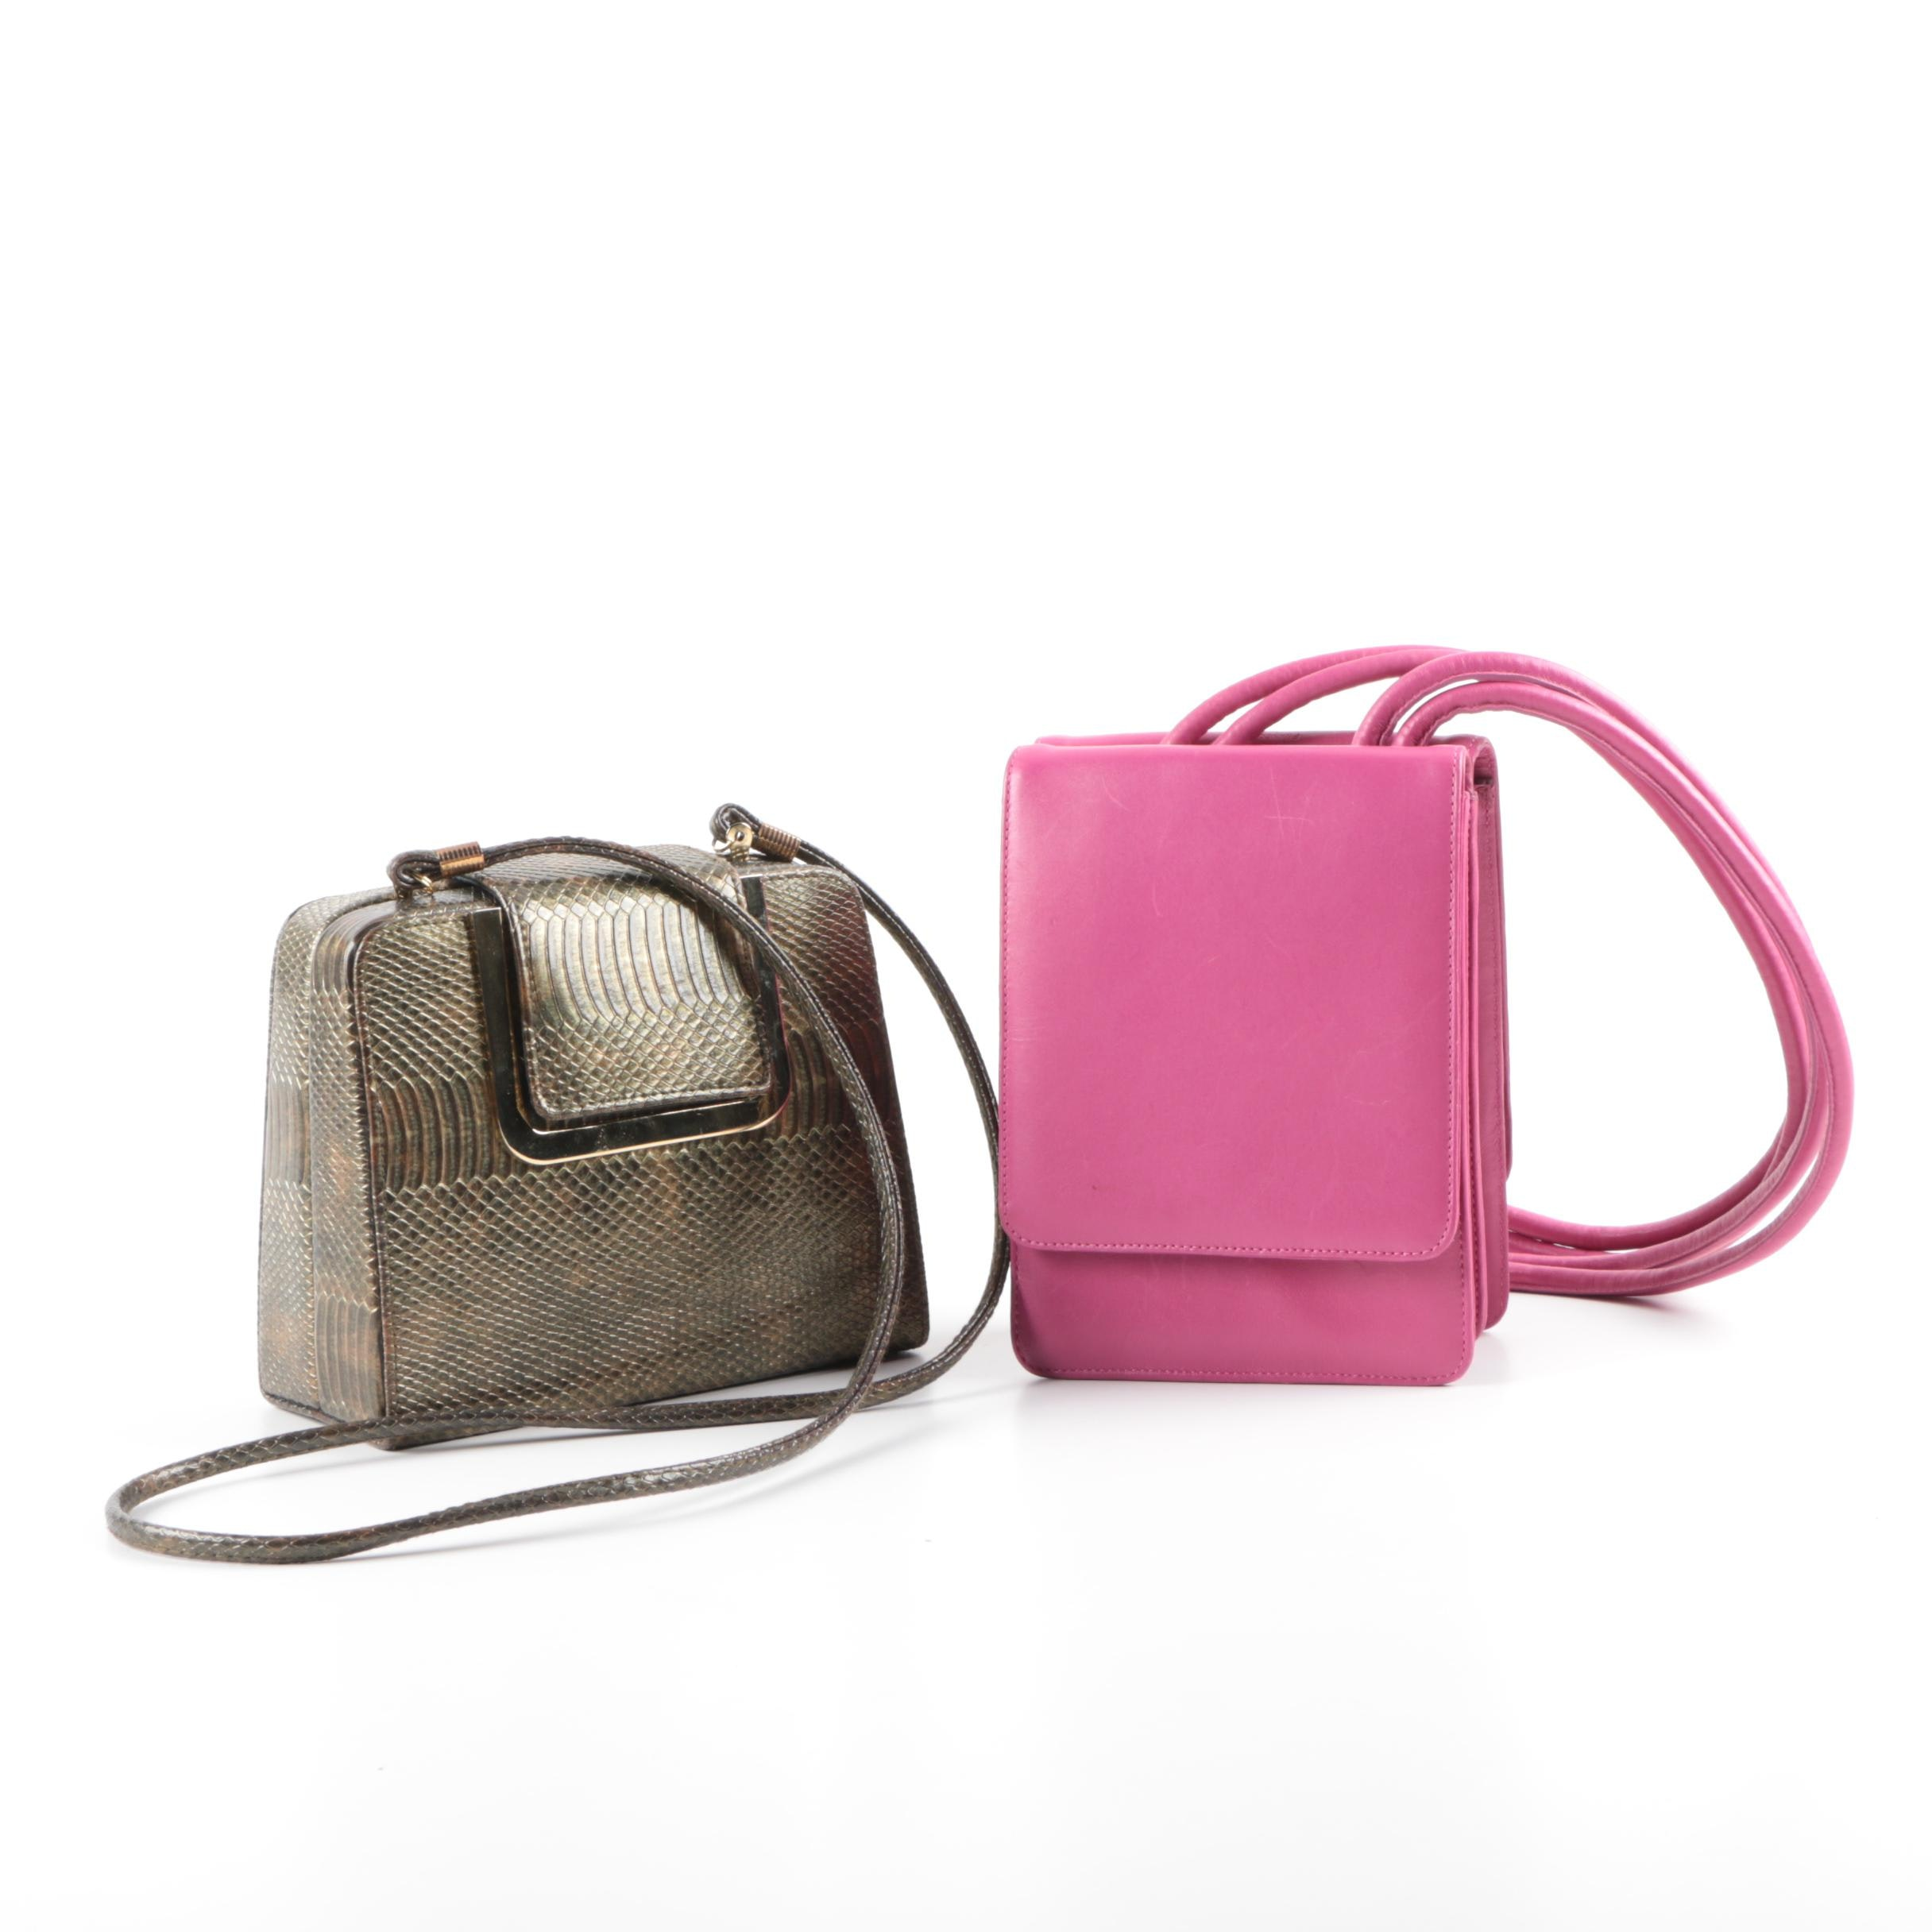 Small Shoulder Handbags